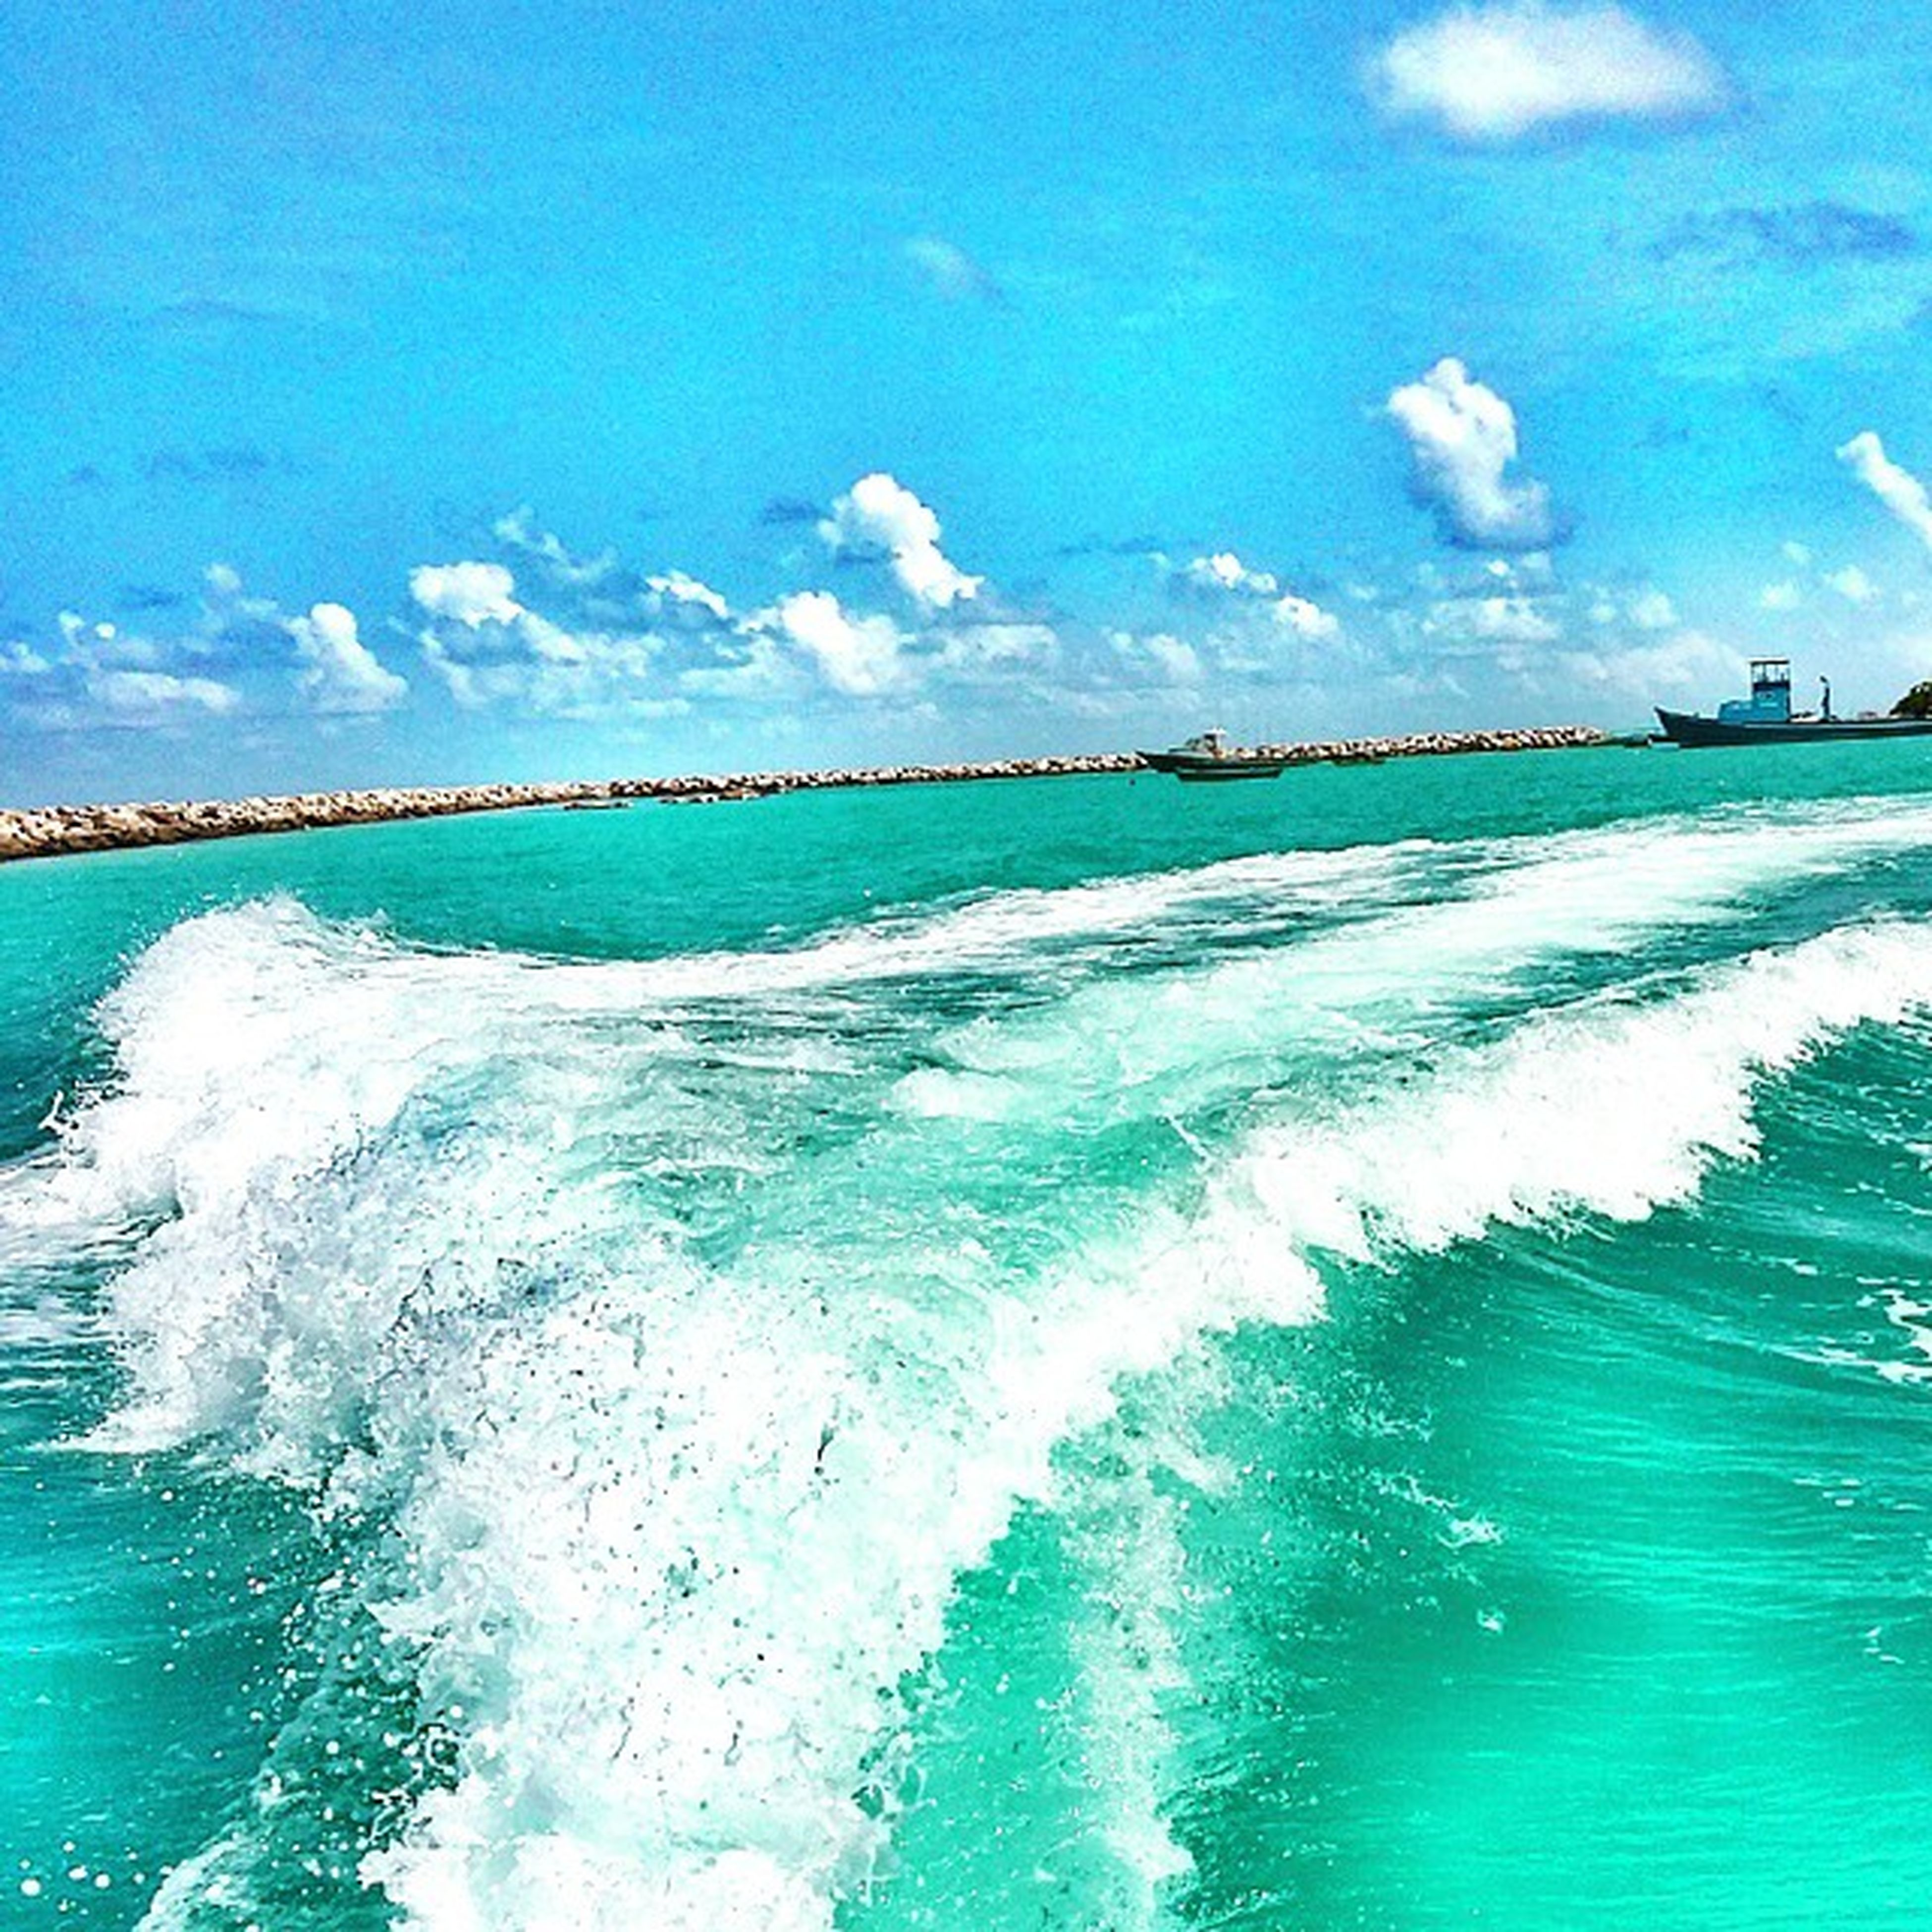 sea, water, blue, horizon over water, sky, wave, scenics, beauty in nature, beach, surf, tranquil scene, nature, tranquility, turquoise colored, motion, waterfront, idyllic, cloud - sky, shore, seascape